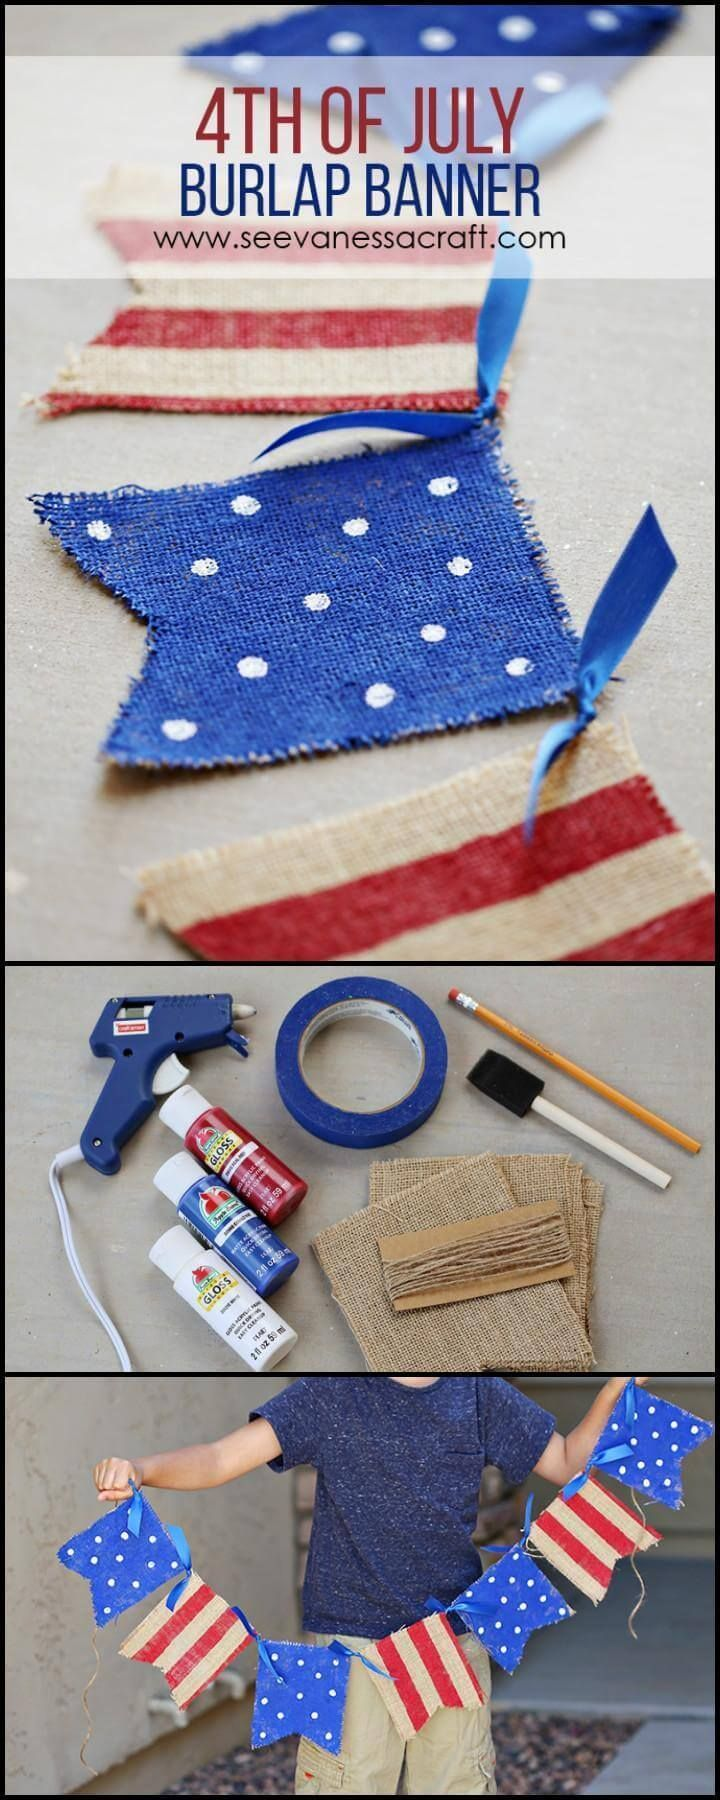 30 DIY 4th of July Decorations – Patriotic Fourth of July Projects 2018 #holidaysinjuly